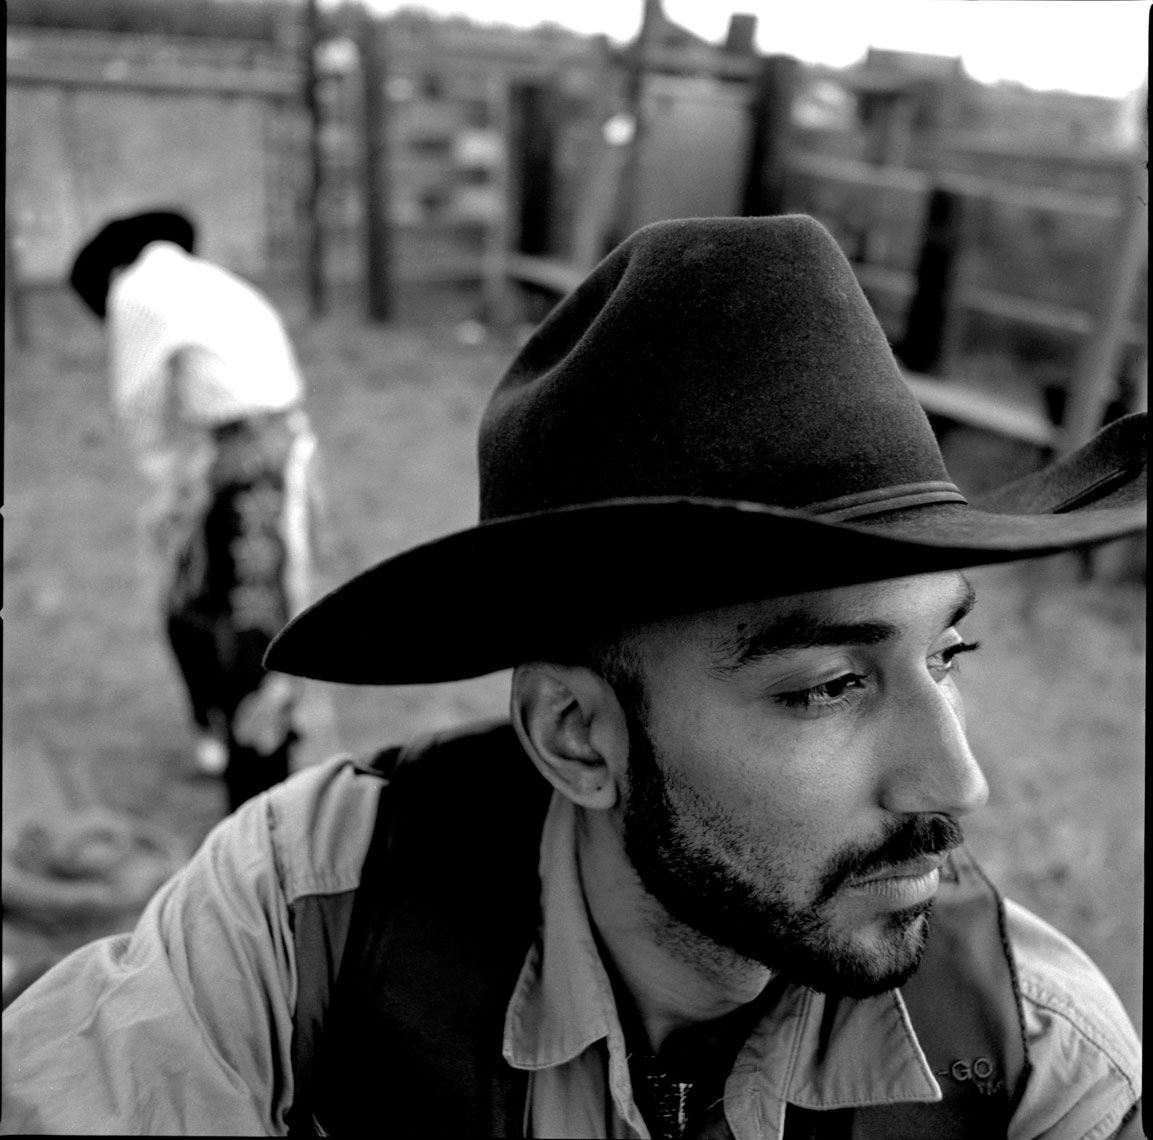 MANUELLO PAGANELLI  Photographer  / PORTRAITS, EDITORIAL, CELEBRITIES / SPORTS , TRAVEL, ADVENTURE / LIFESTYLE, FASHION /MAGAZINE, WORKSHOPS - HOLLYWOOD, SAN FRANCISCO, LOS ANGELES California - BLACK COWBOYS DOCUMENTARY -